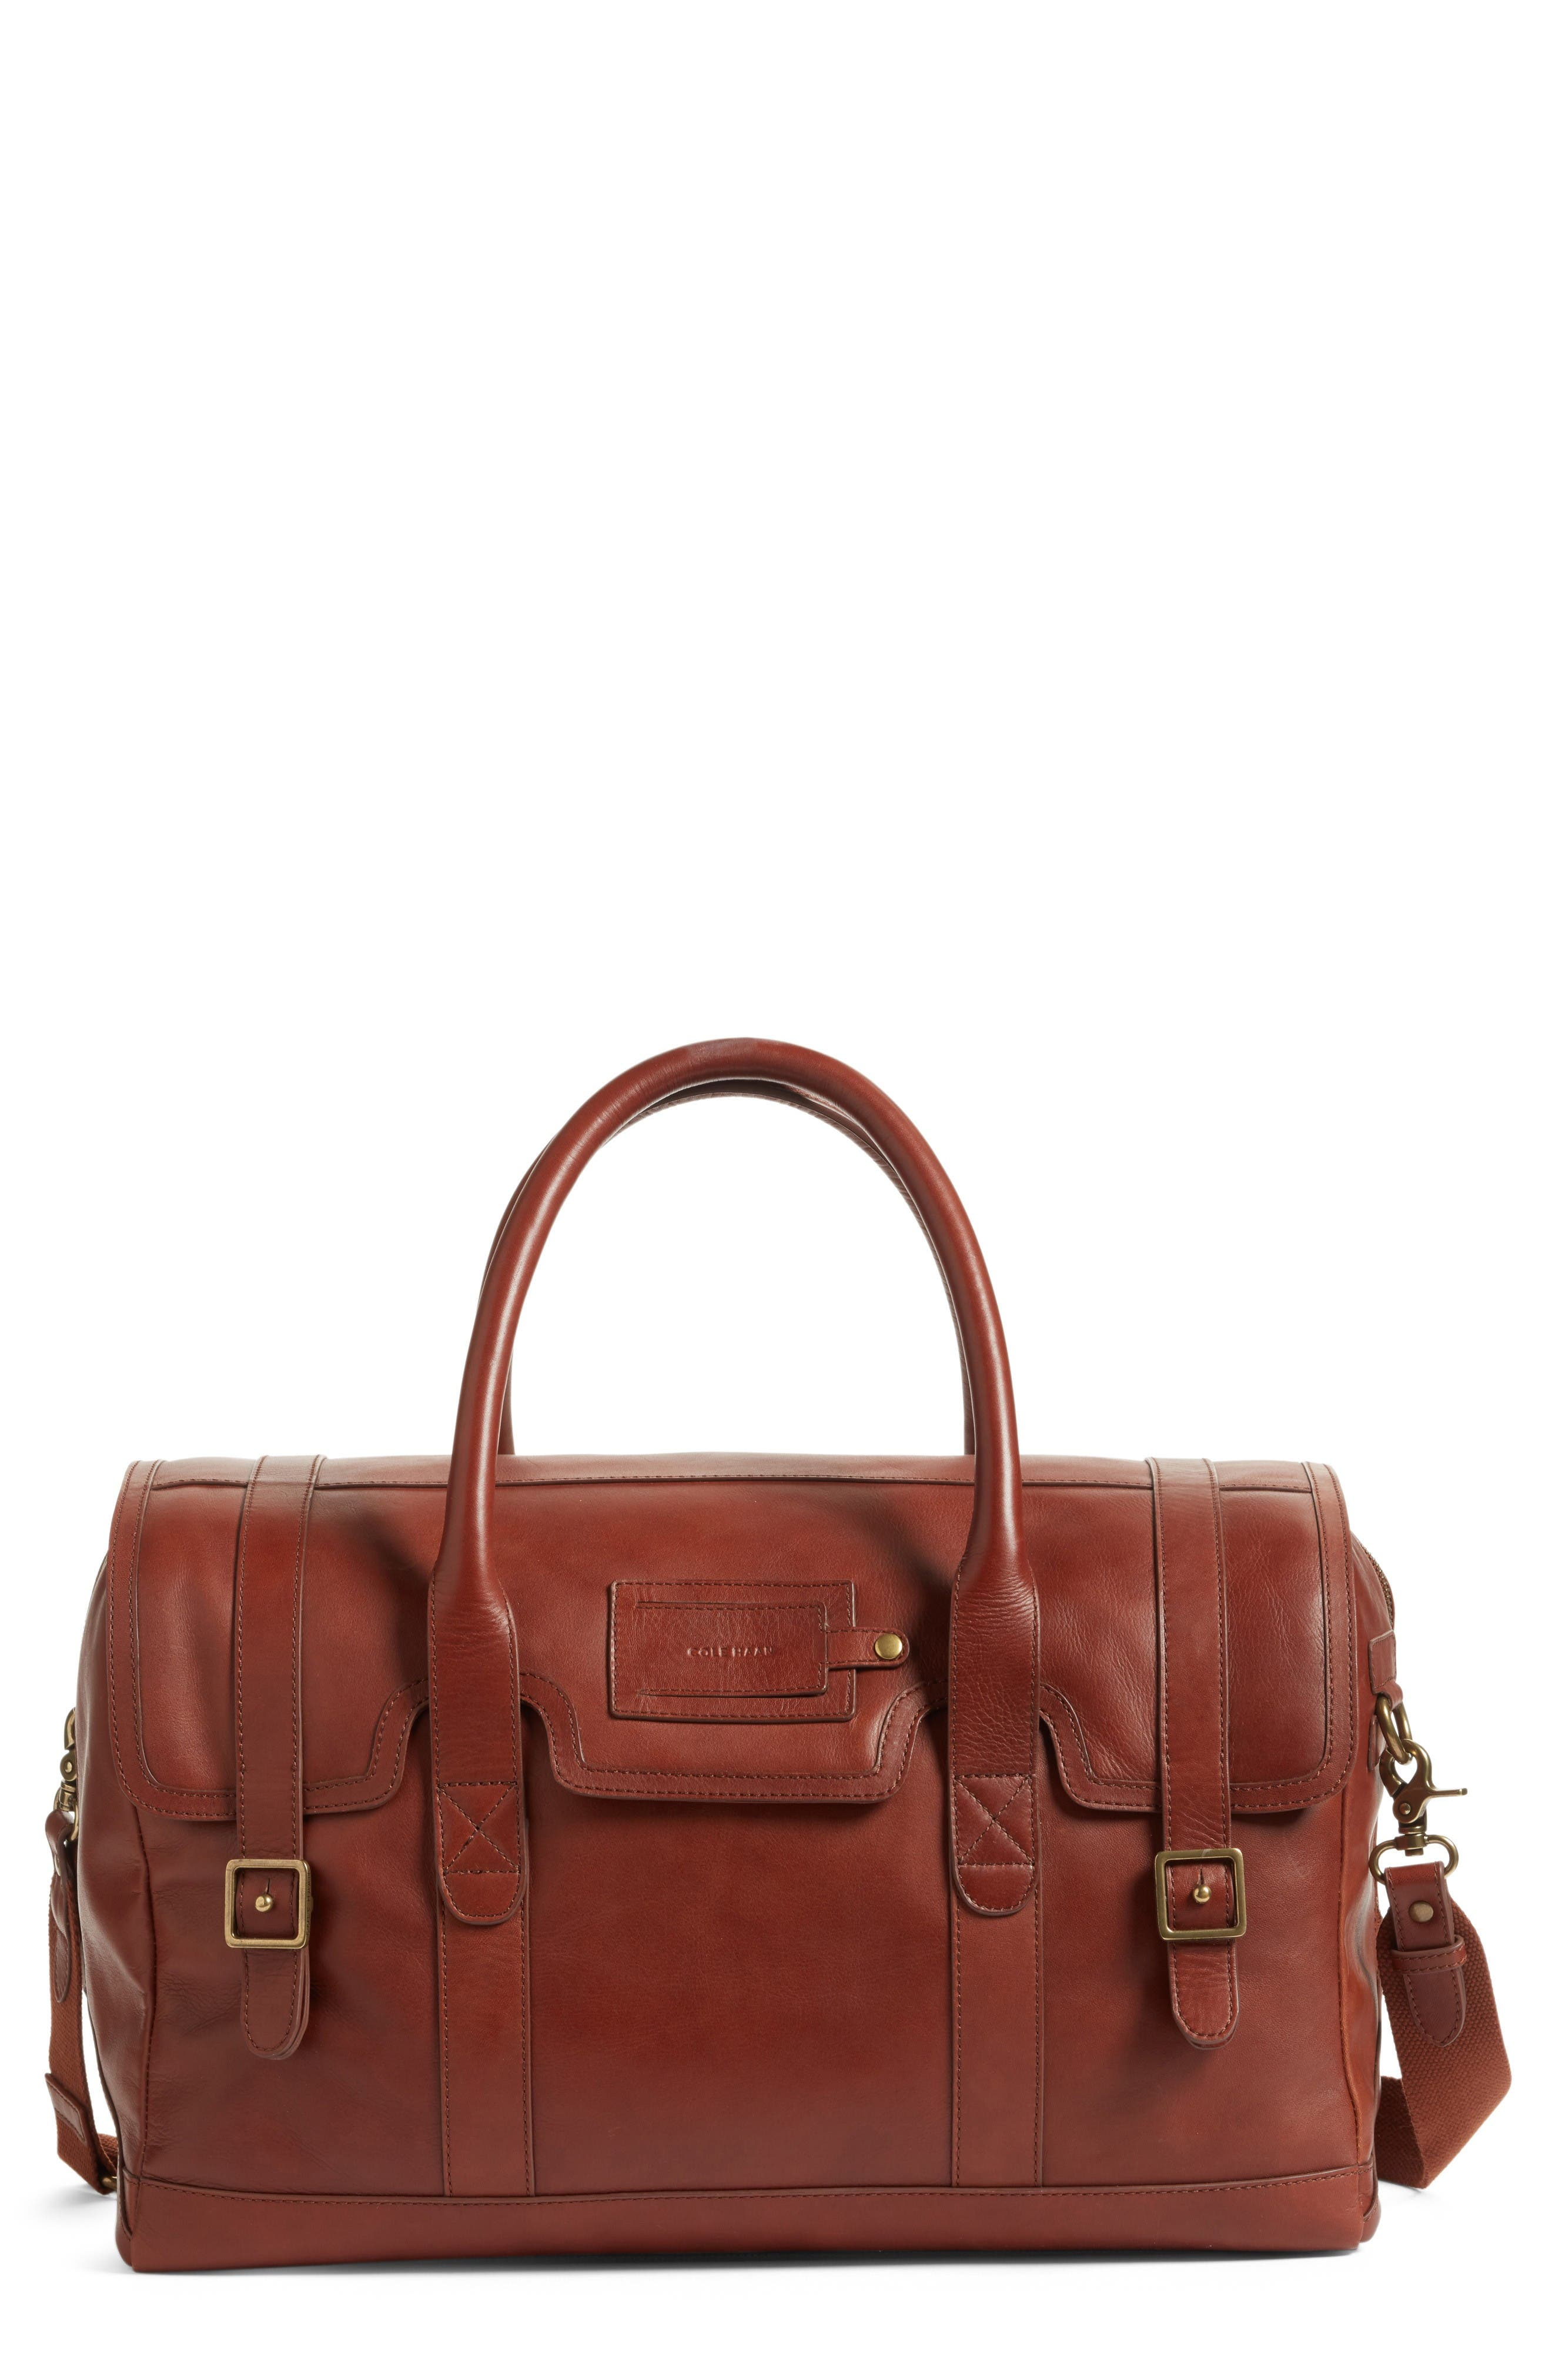 Cole Haan Leather Duffel Bag